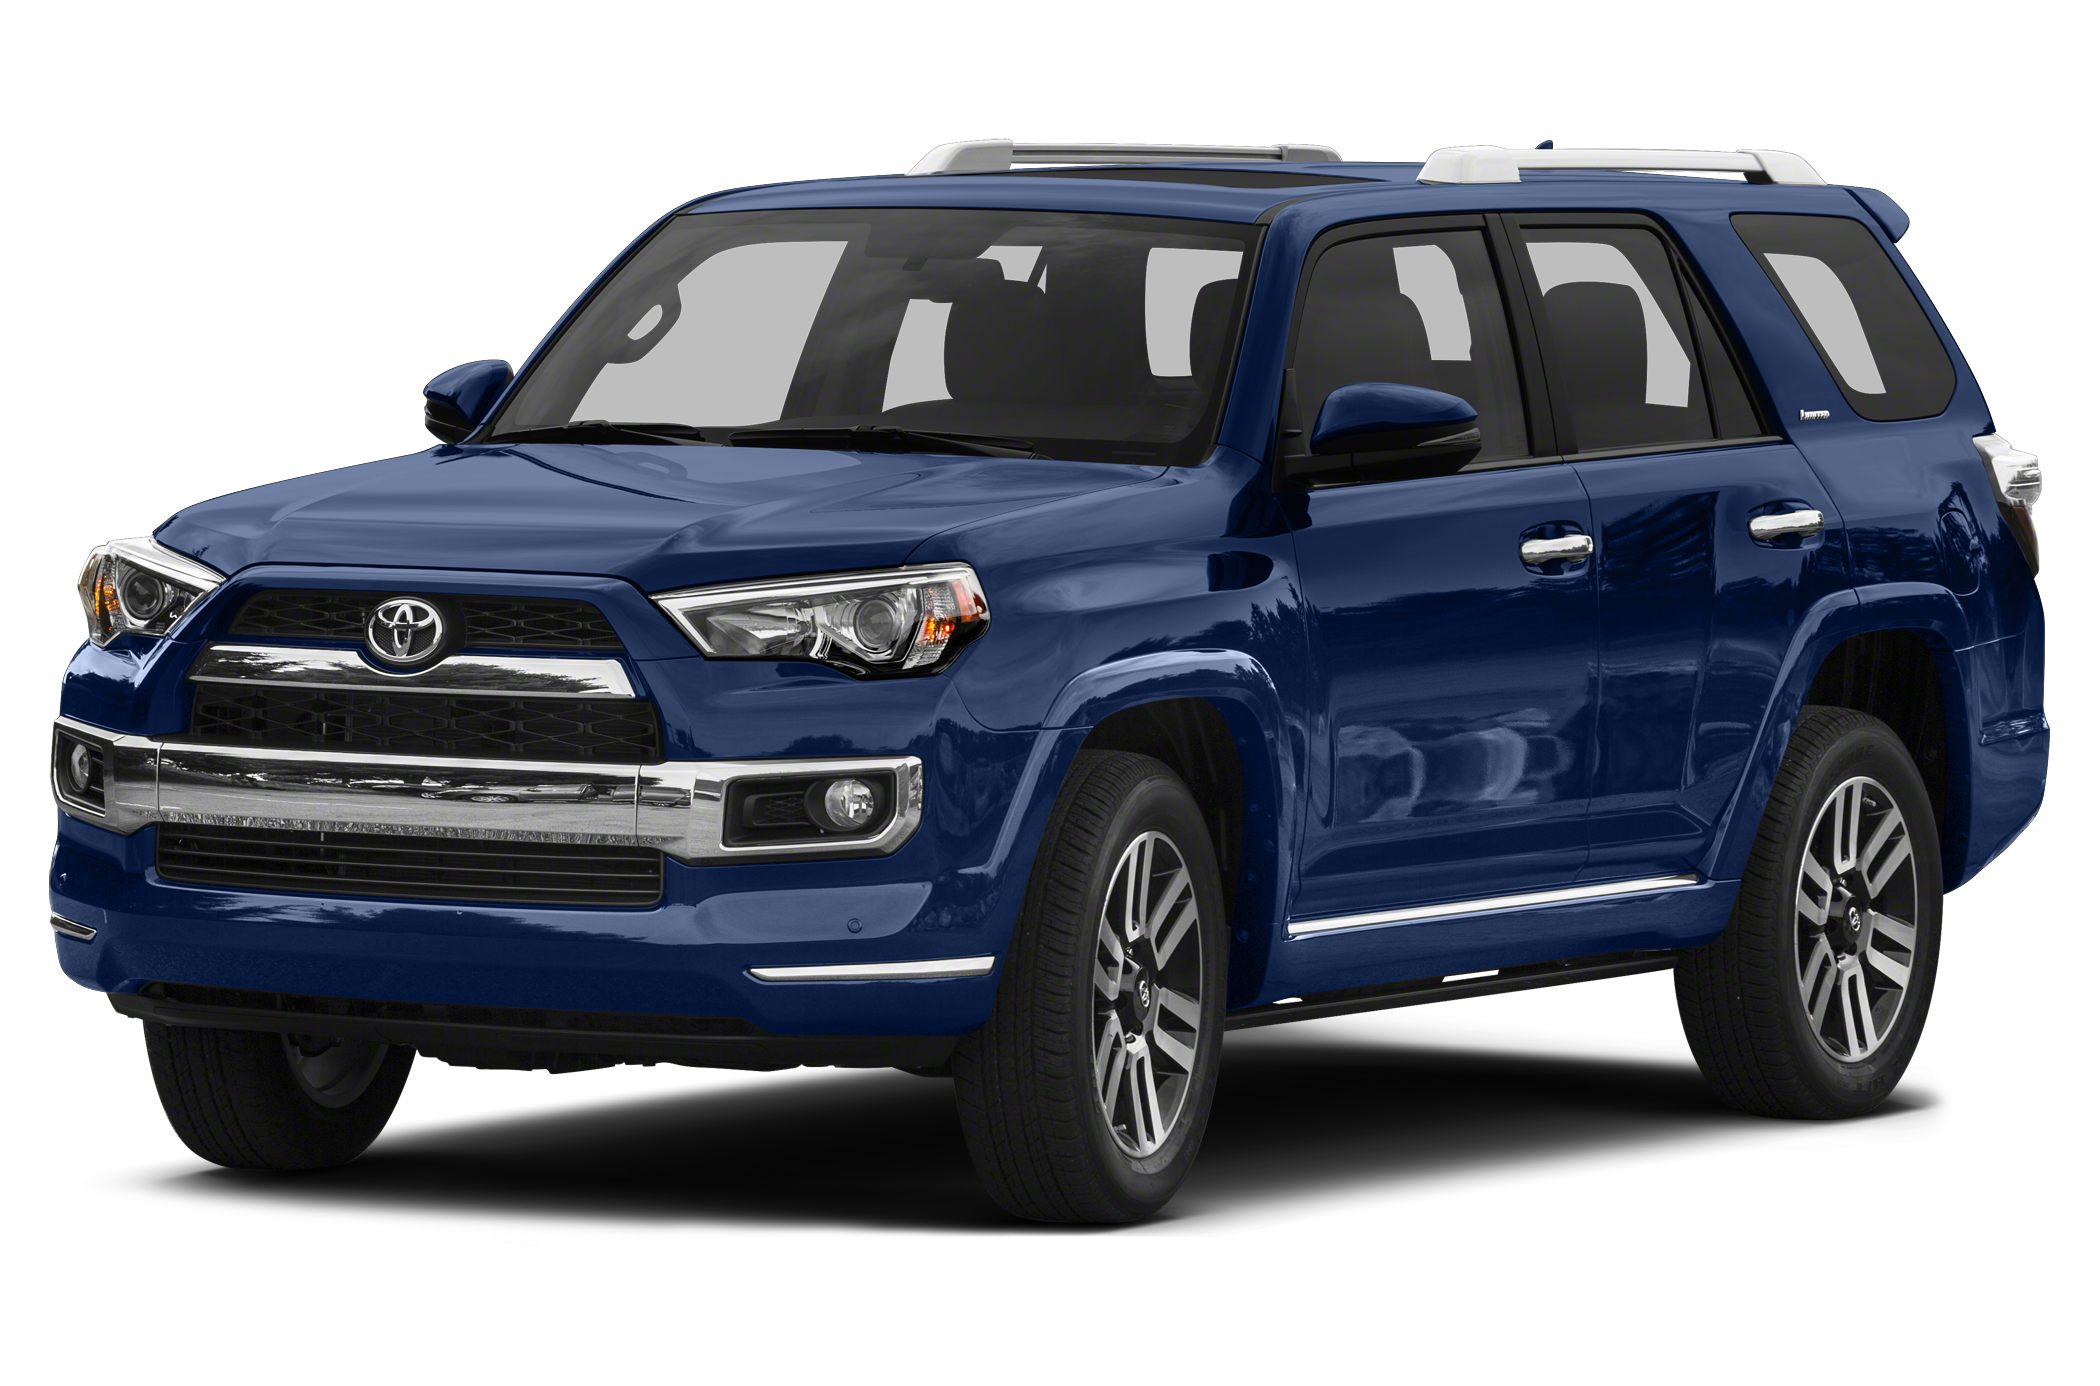 2014 Toyota 4Runner Limited Foley Motorsports was voted a 2015 DealerRater Consumer Satisfaction A